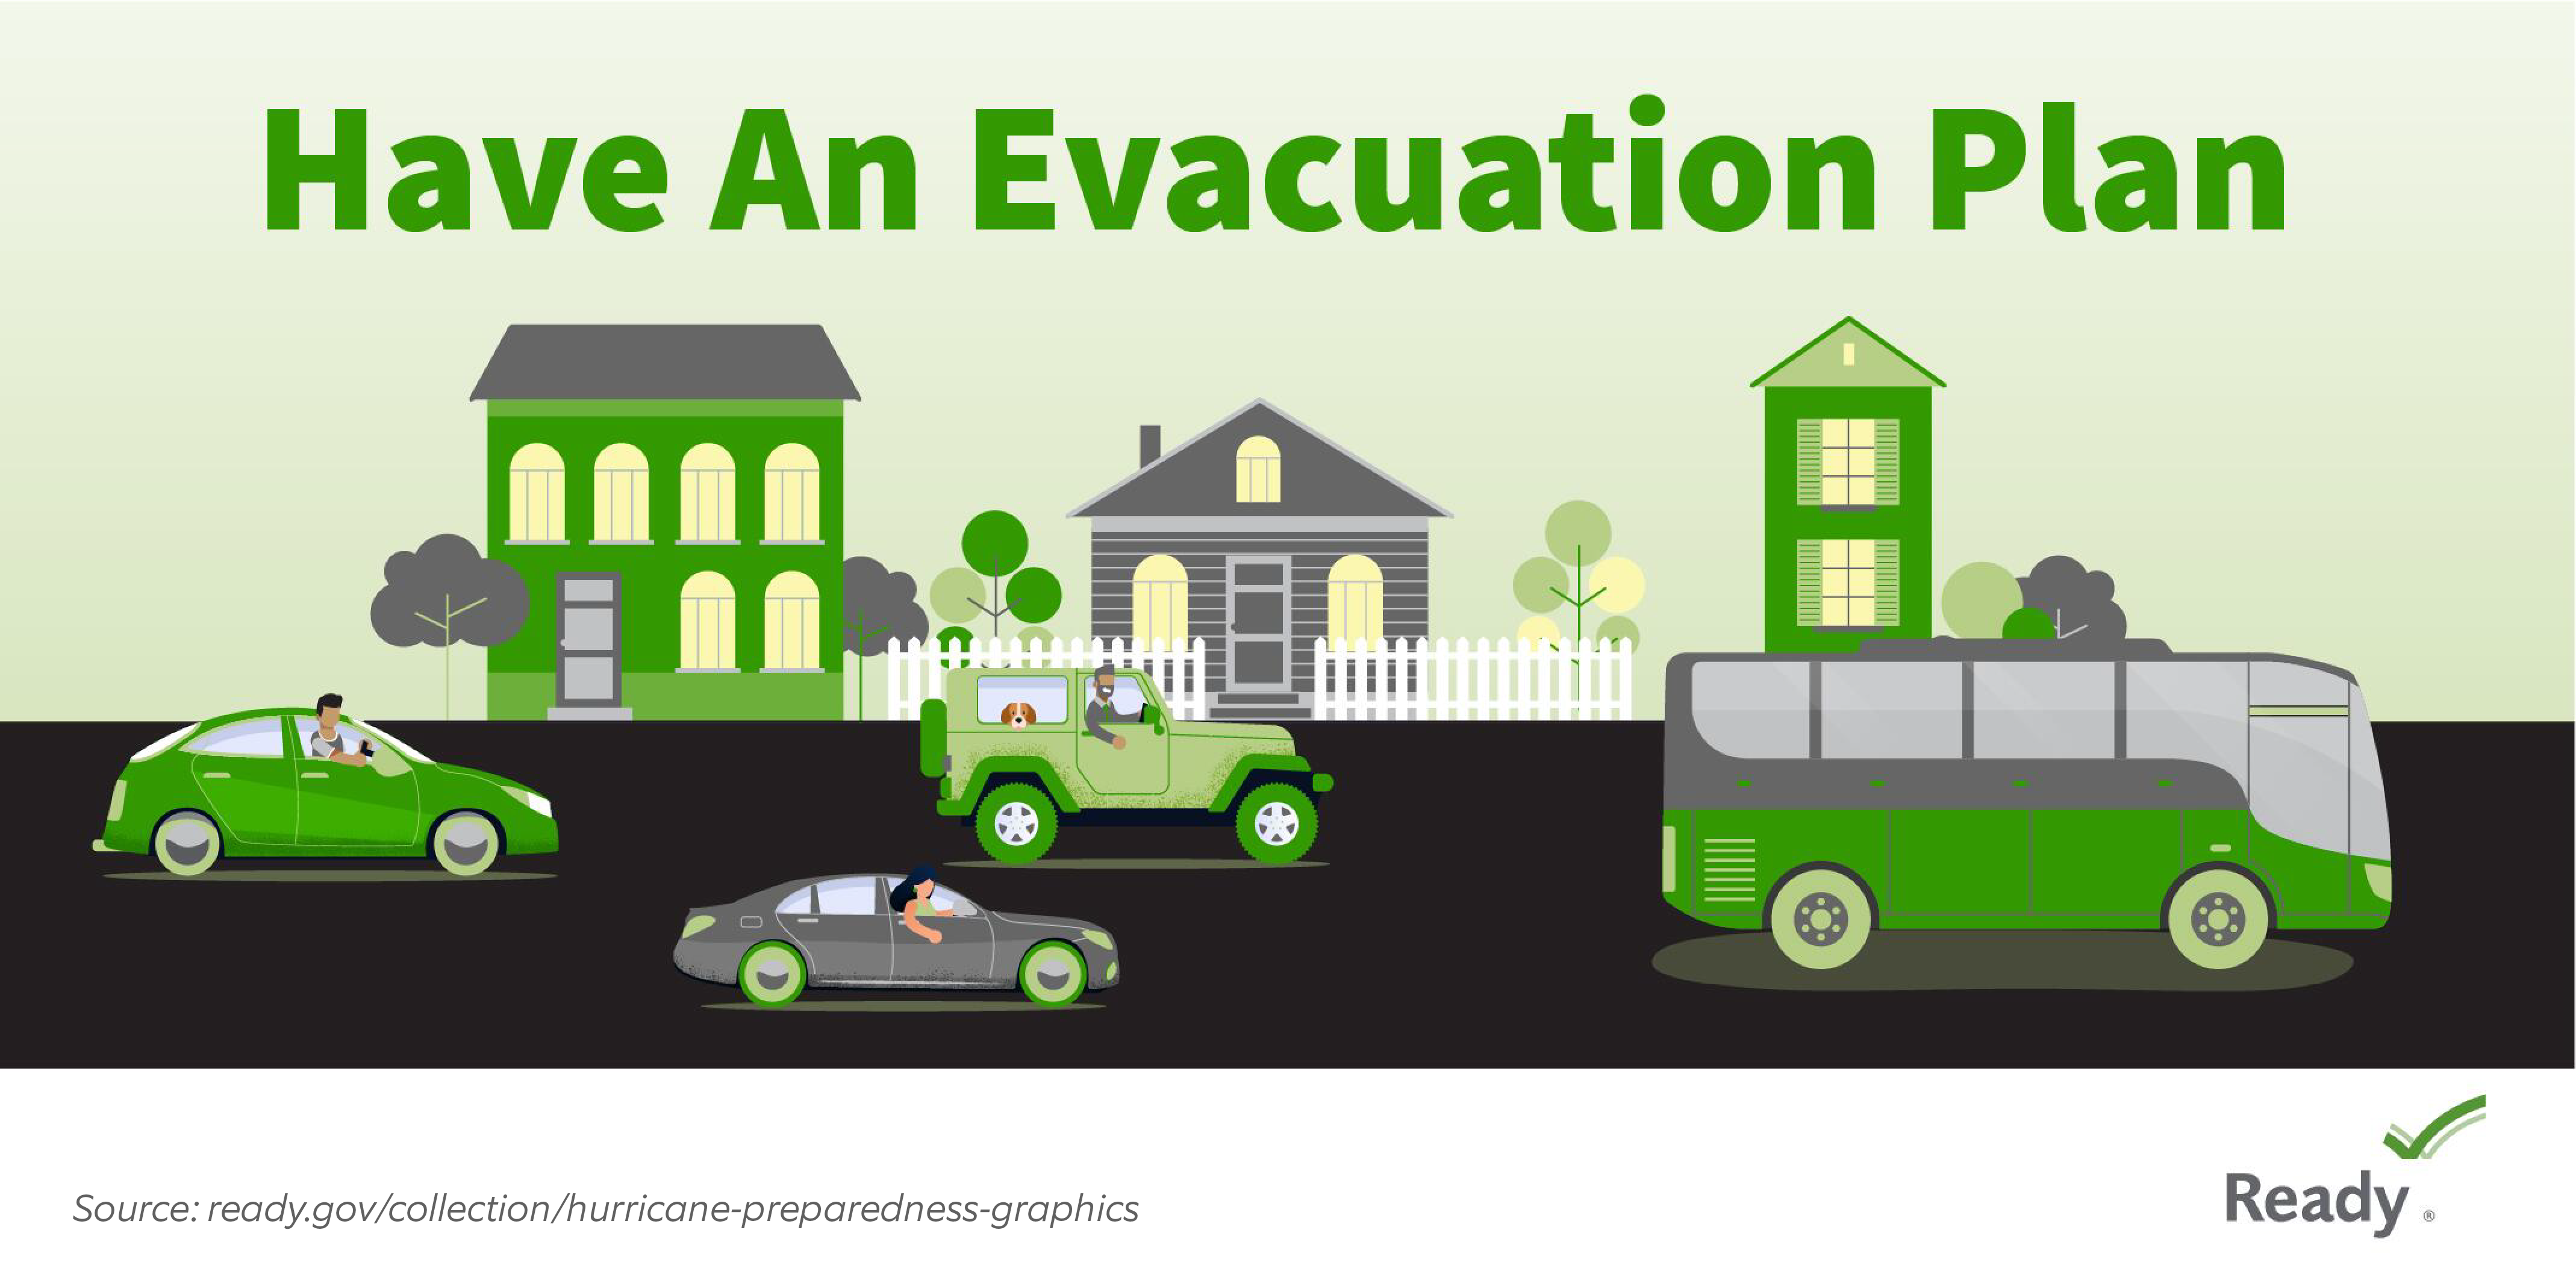 Hurricane_preparedness-_have_an_evacuation_plan.png